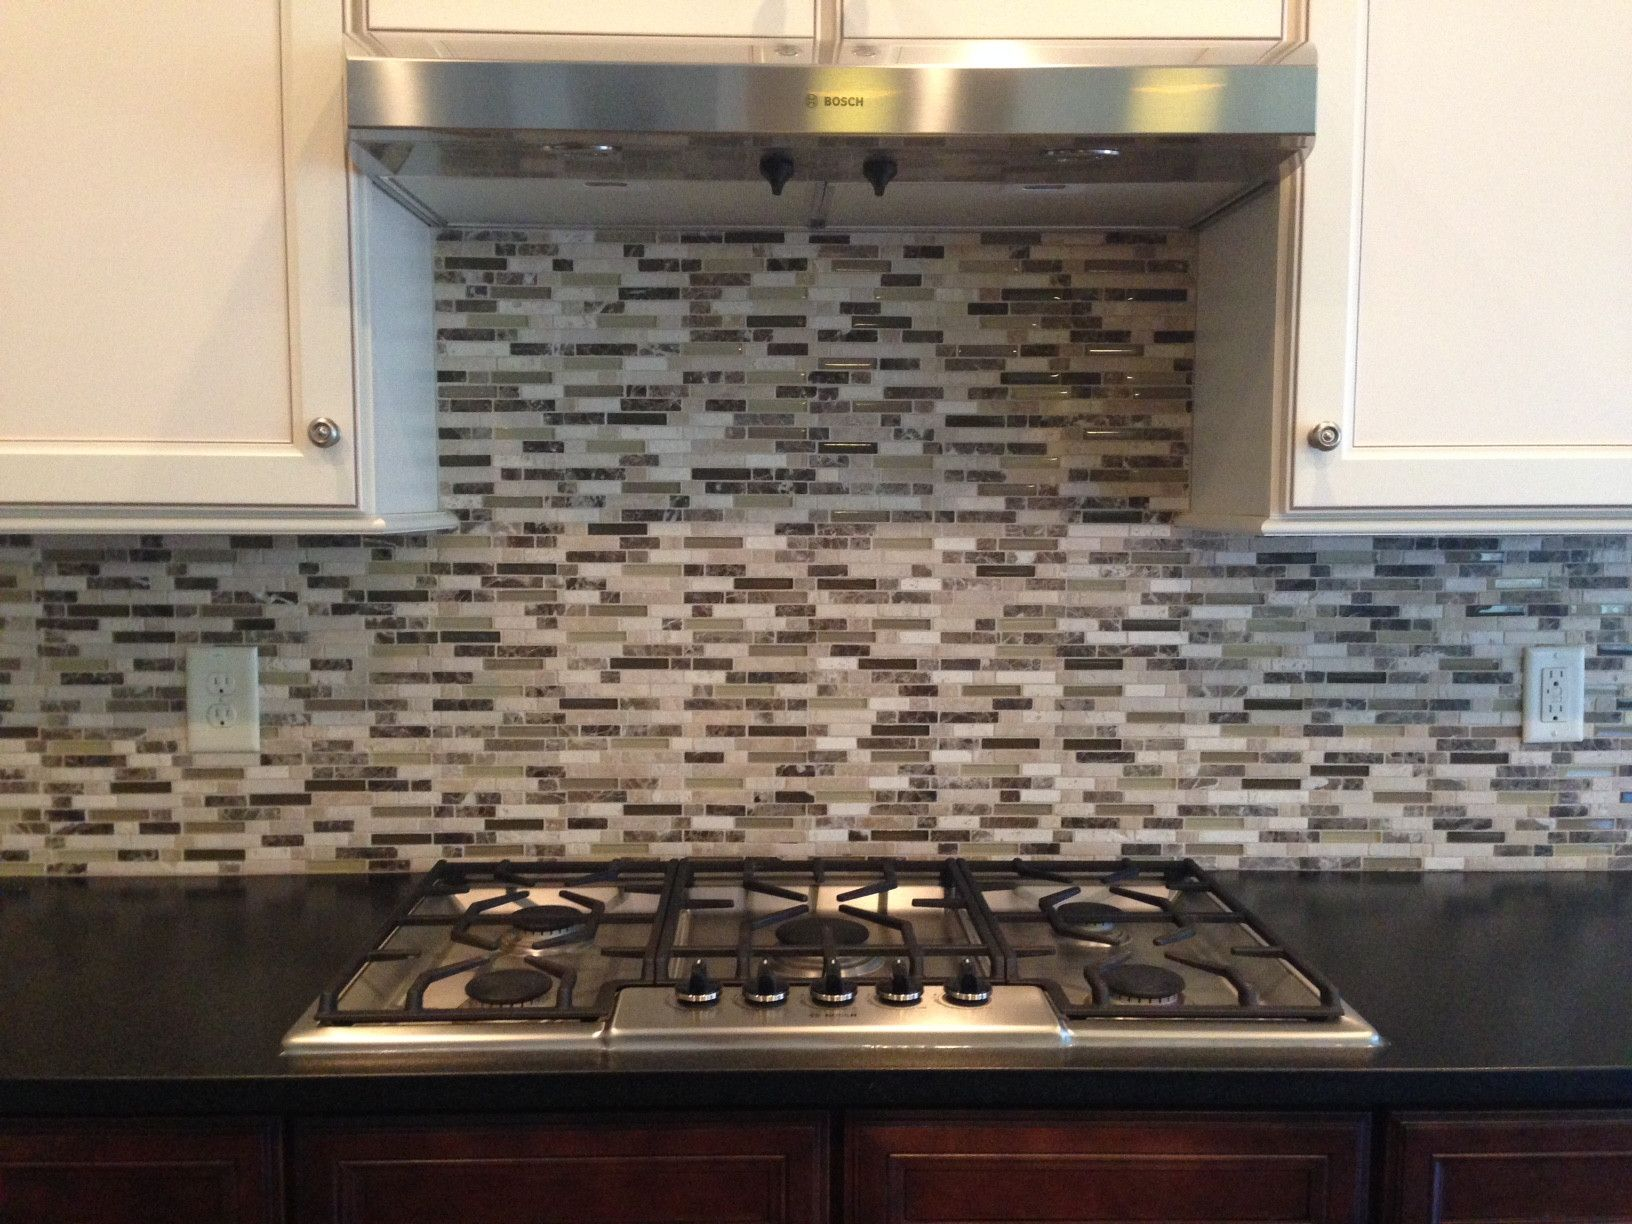 Replacing Kitchen Cabinets Without Removing Countertop In 2020 Modern Kitchen Tiles Modern Kitchen Tile Backsplash Kitchen Cabinets And Countertops